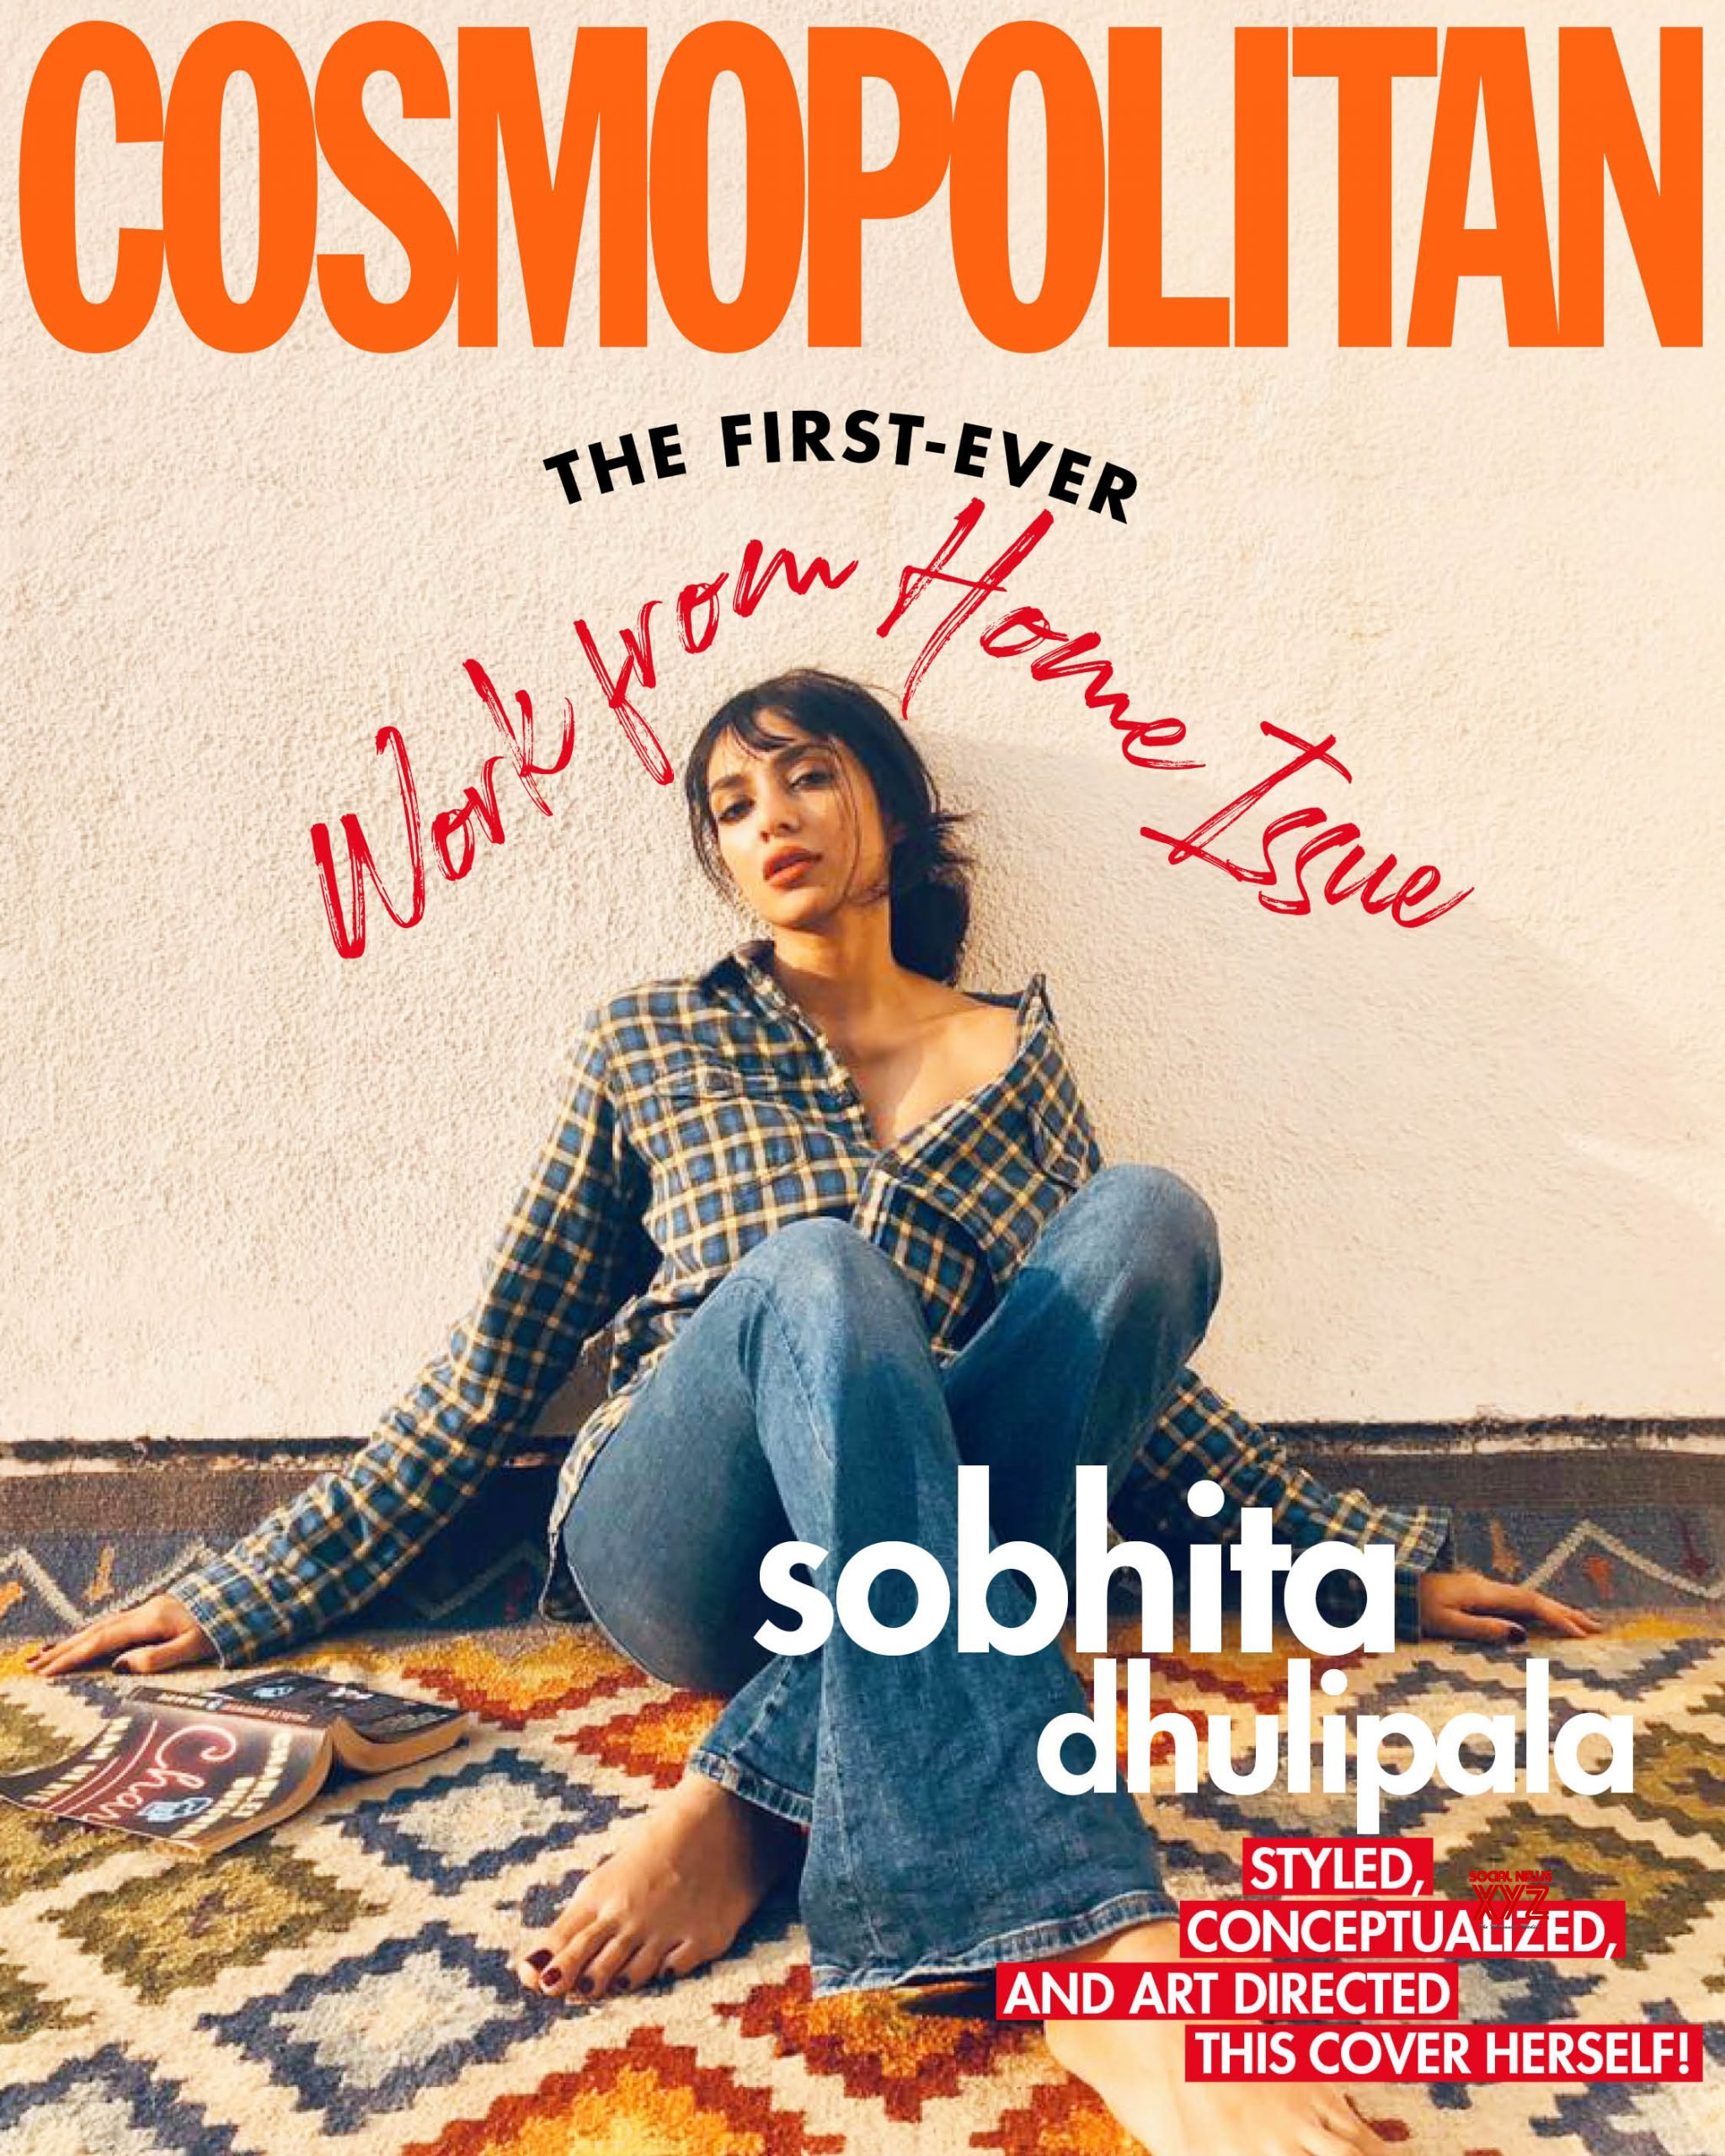 Cosmopolitan India Launches The World's First Ever #WorkFromHome Issue